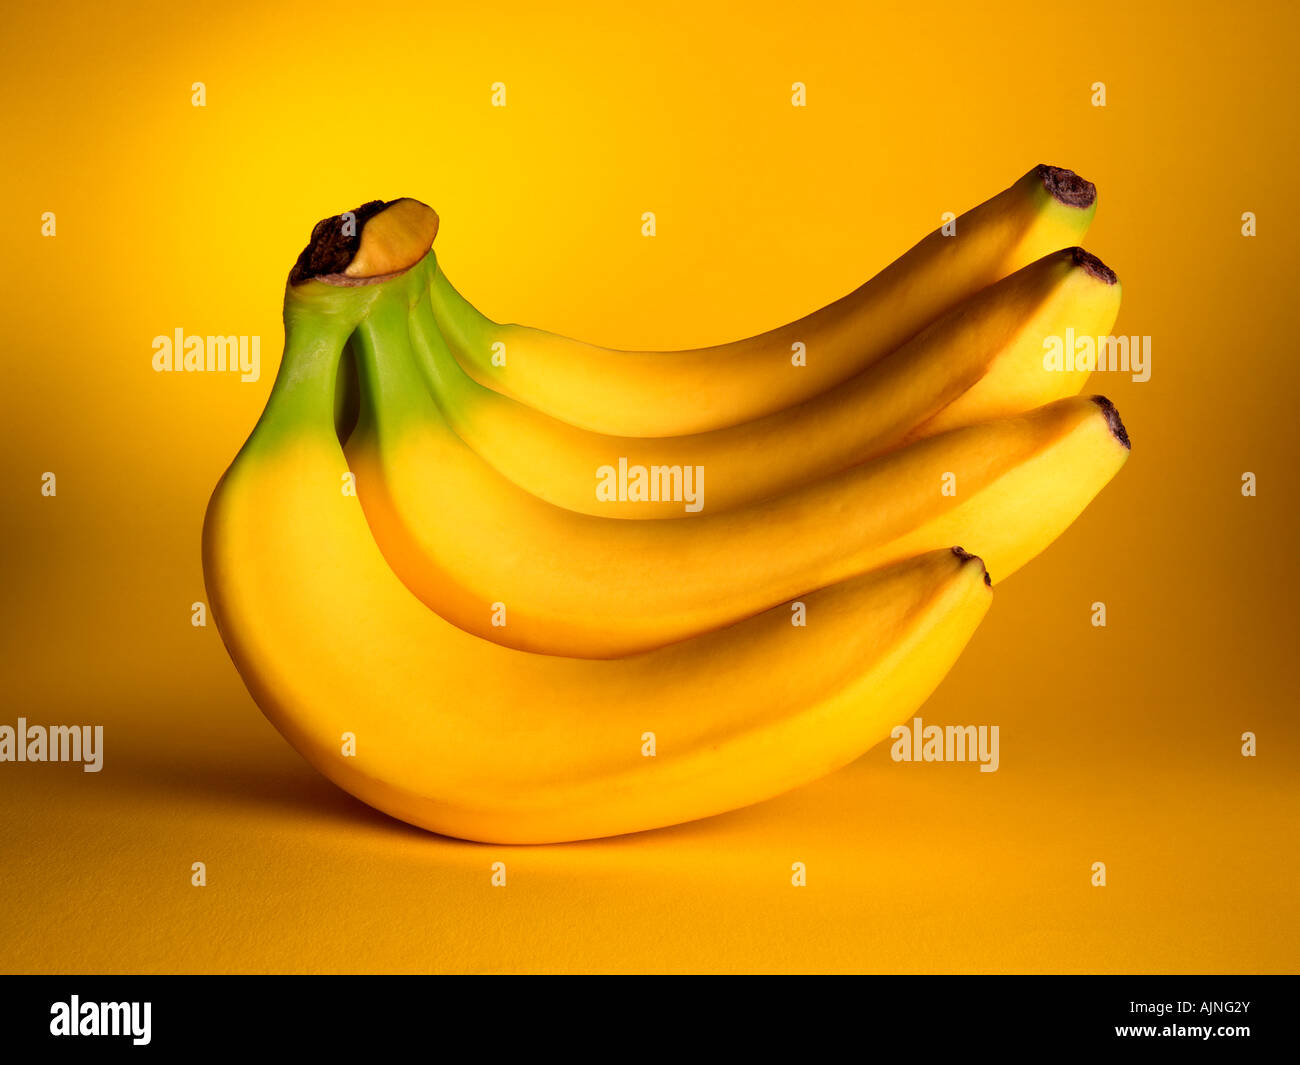 A BUNCH OF YELLOW BANANAS ON A MATCHING YELLOW BACKGROUND - Stock Image